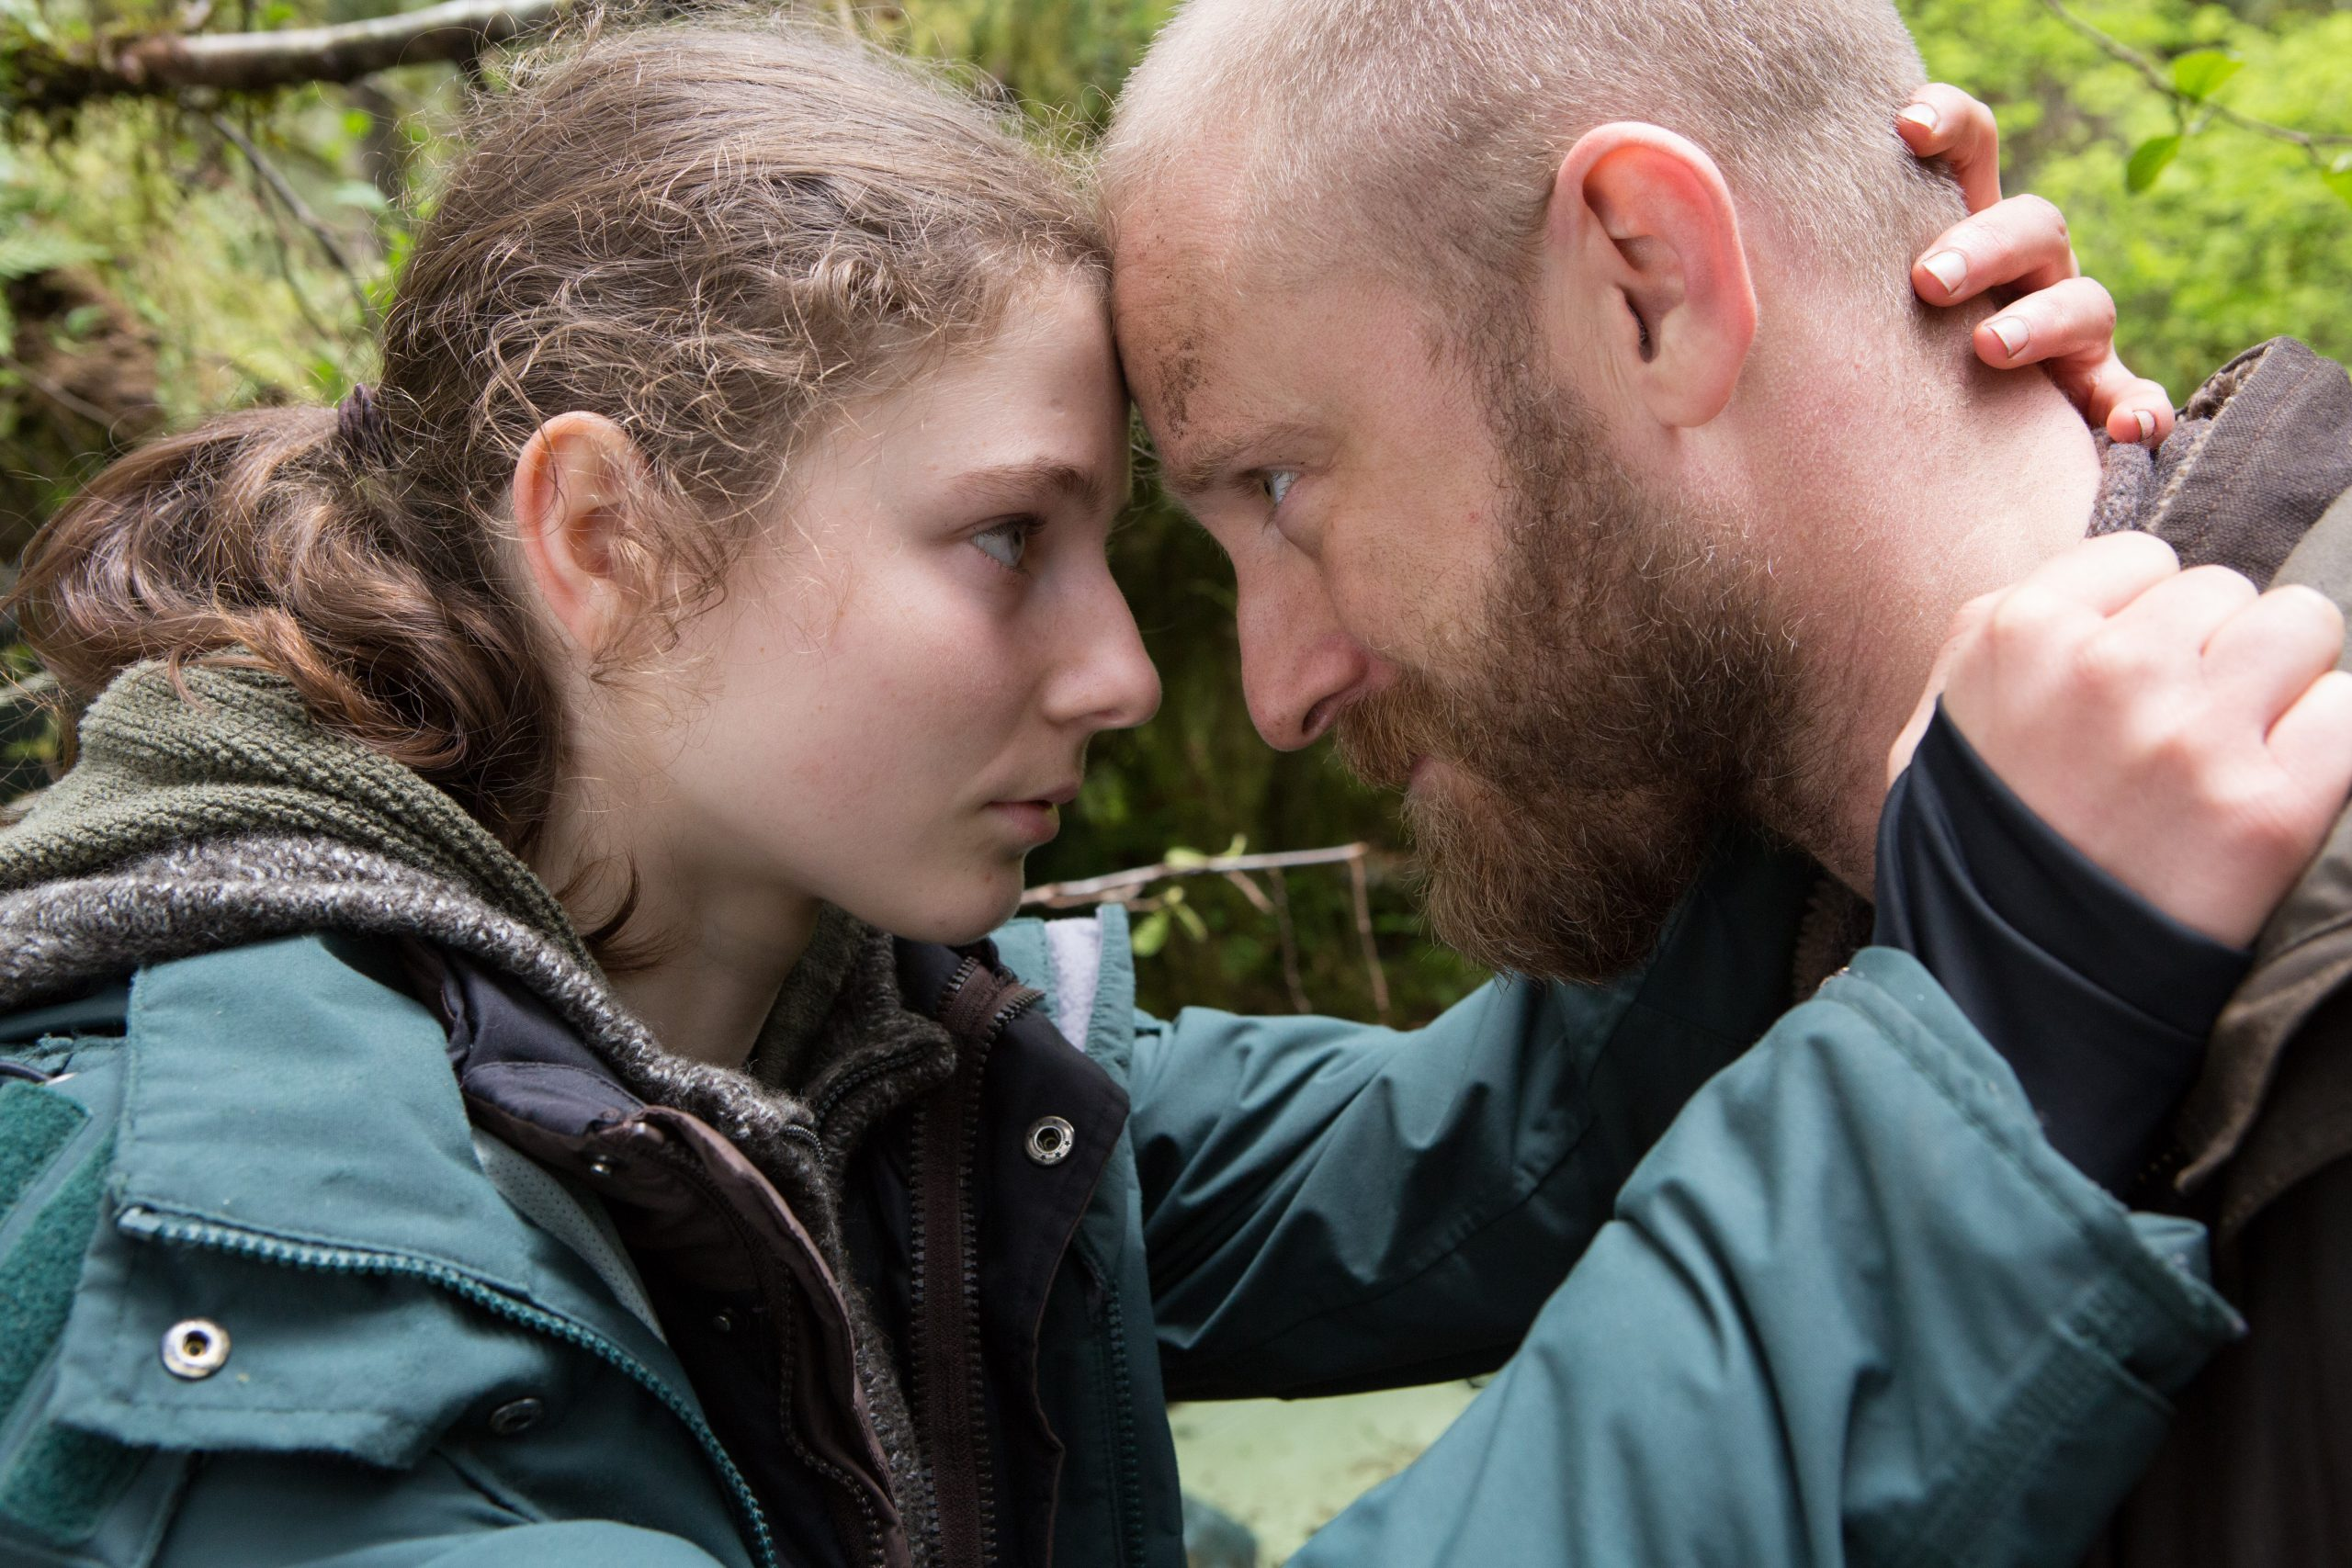 Thomasin McKenzie and Ben Foster put their heads together in Debra Granik's film Leave No Trace.